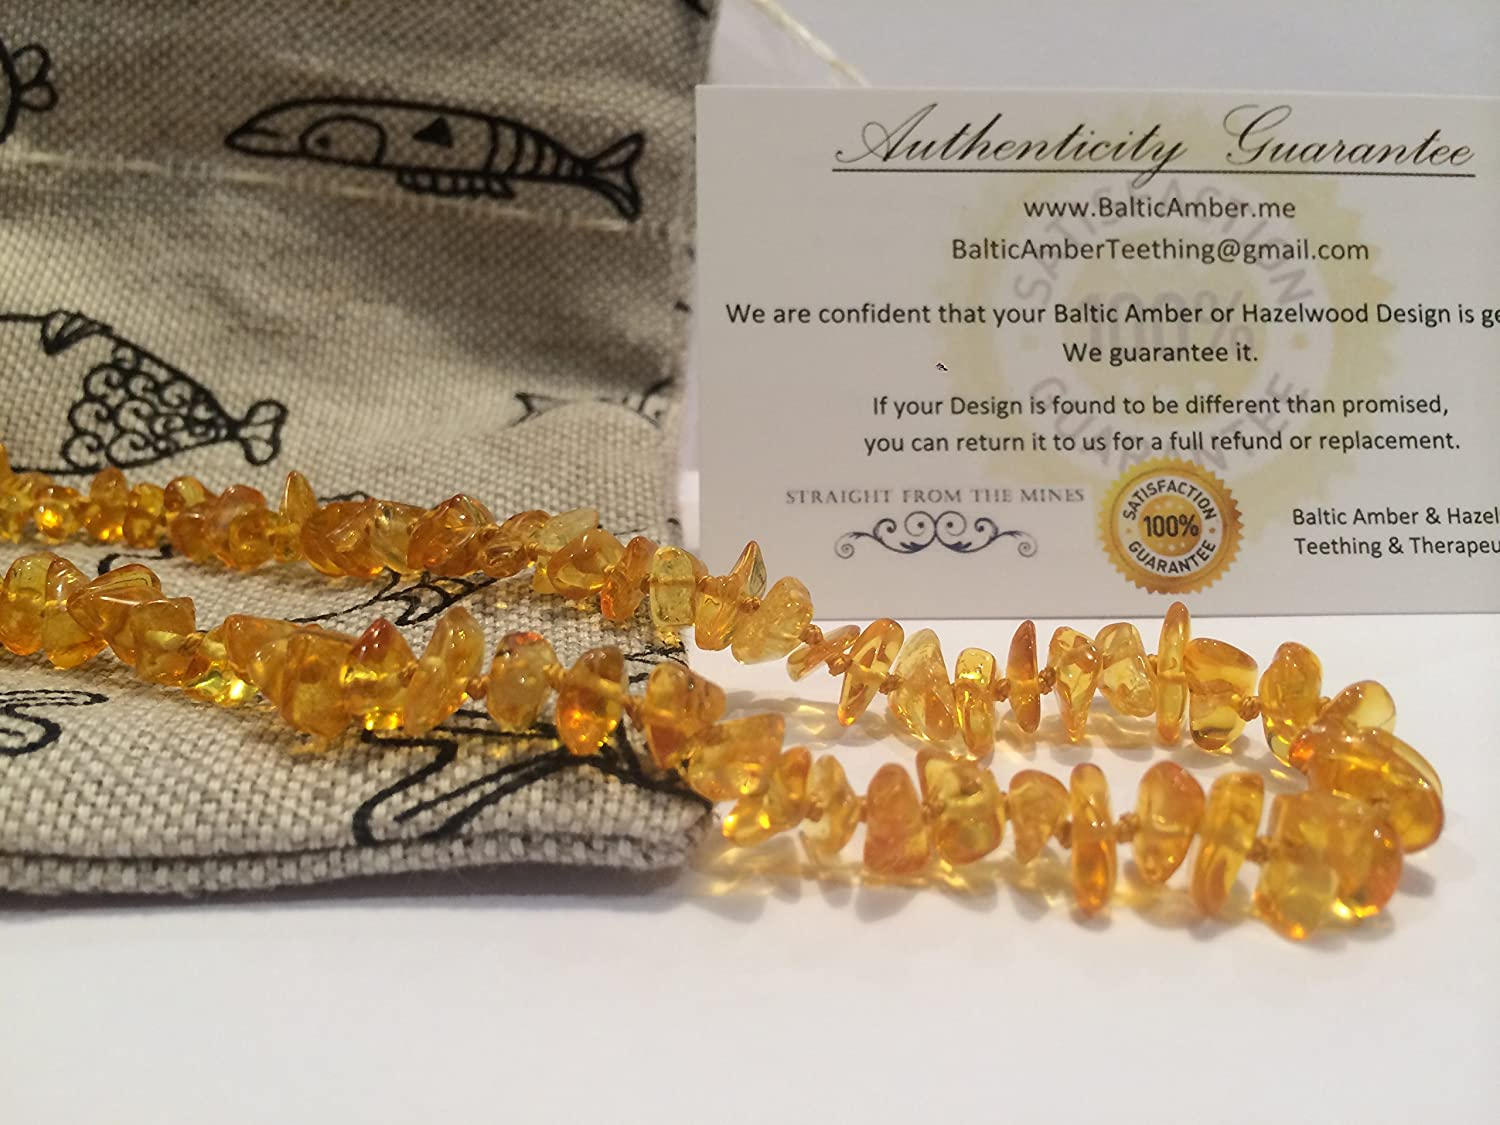 14 Inch Baltic Amber Teething Necklace for Toddler and Big Kid and some adults (Unisex) - Lemon Yellow Anti Flammatory, Drooling & Teething Pain Reduce Properties - Growing Pains. Certificated Natural Oval Baltic Jewelry with the Highest Quality Guaranteed. Easy to Fastens with a Twist-in Screw Clasp Mothers Approved Remedies! 14 inches, Helps some with colic & eczema. by Baltic Essentials   B00U7SN8UE